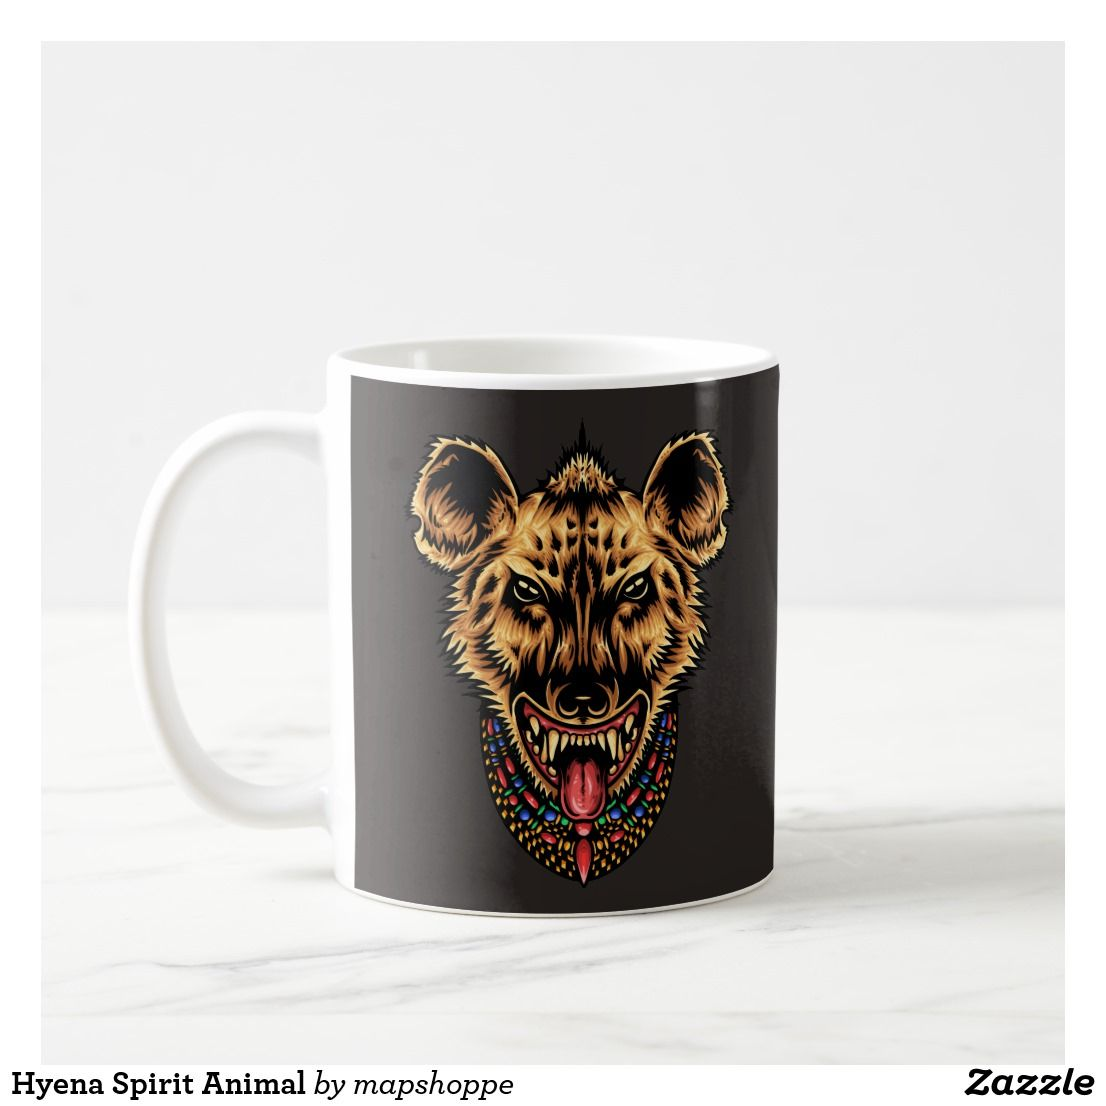 Animal Coffee Cups Hyena Spirit Animal Coffee Mug More Animal Designs In Our Zazzle